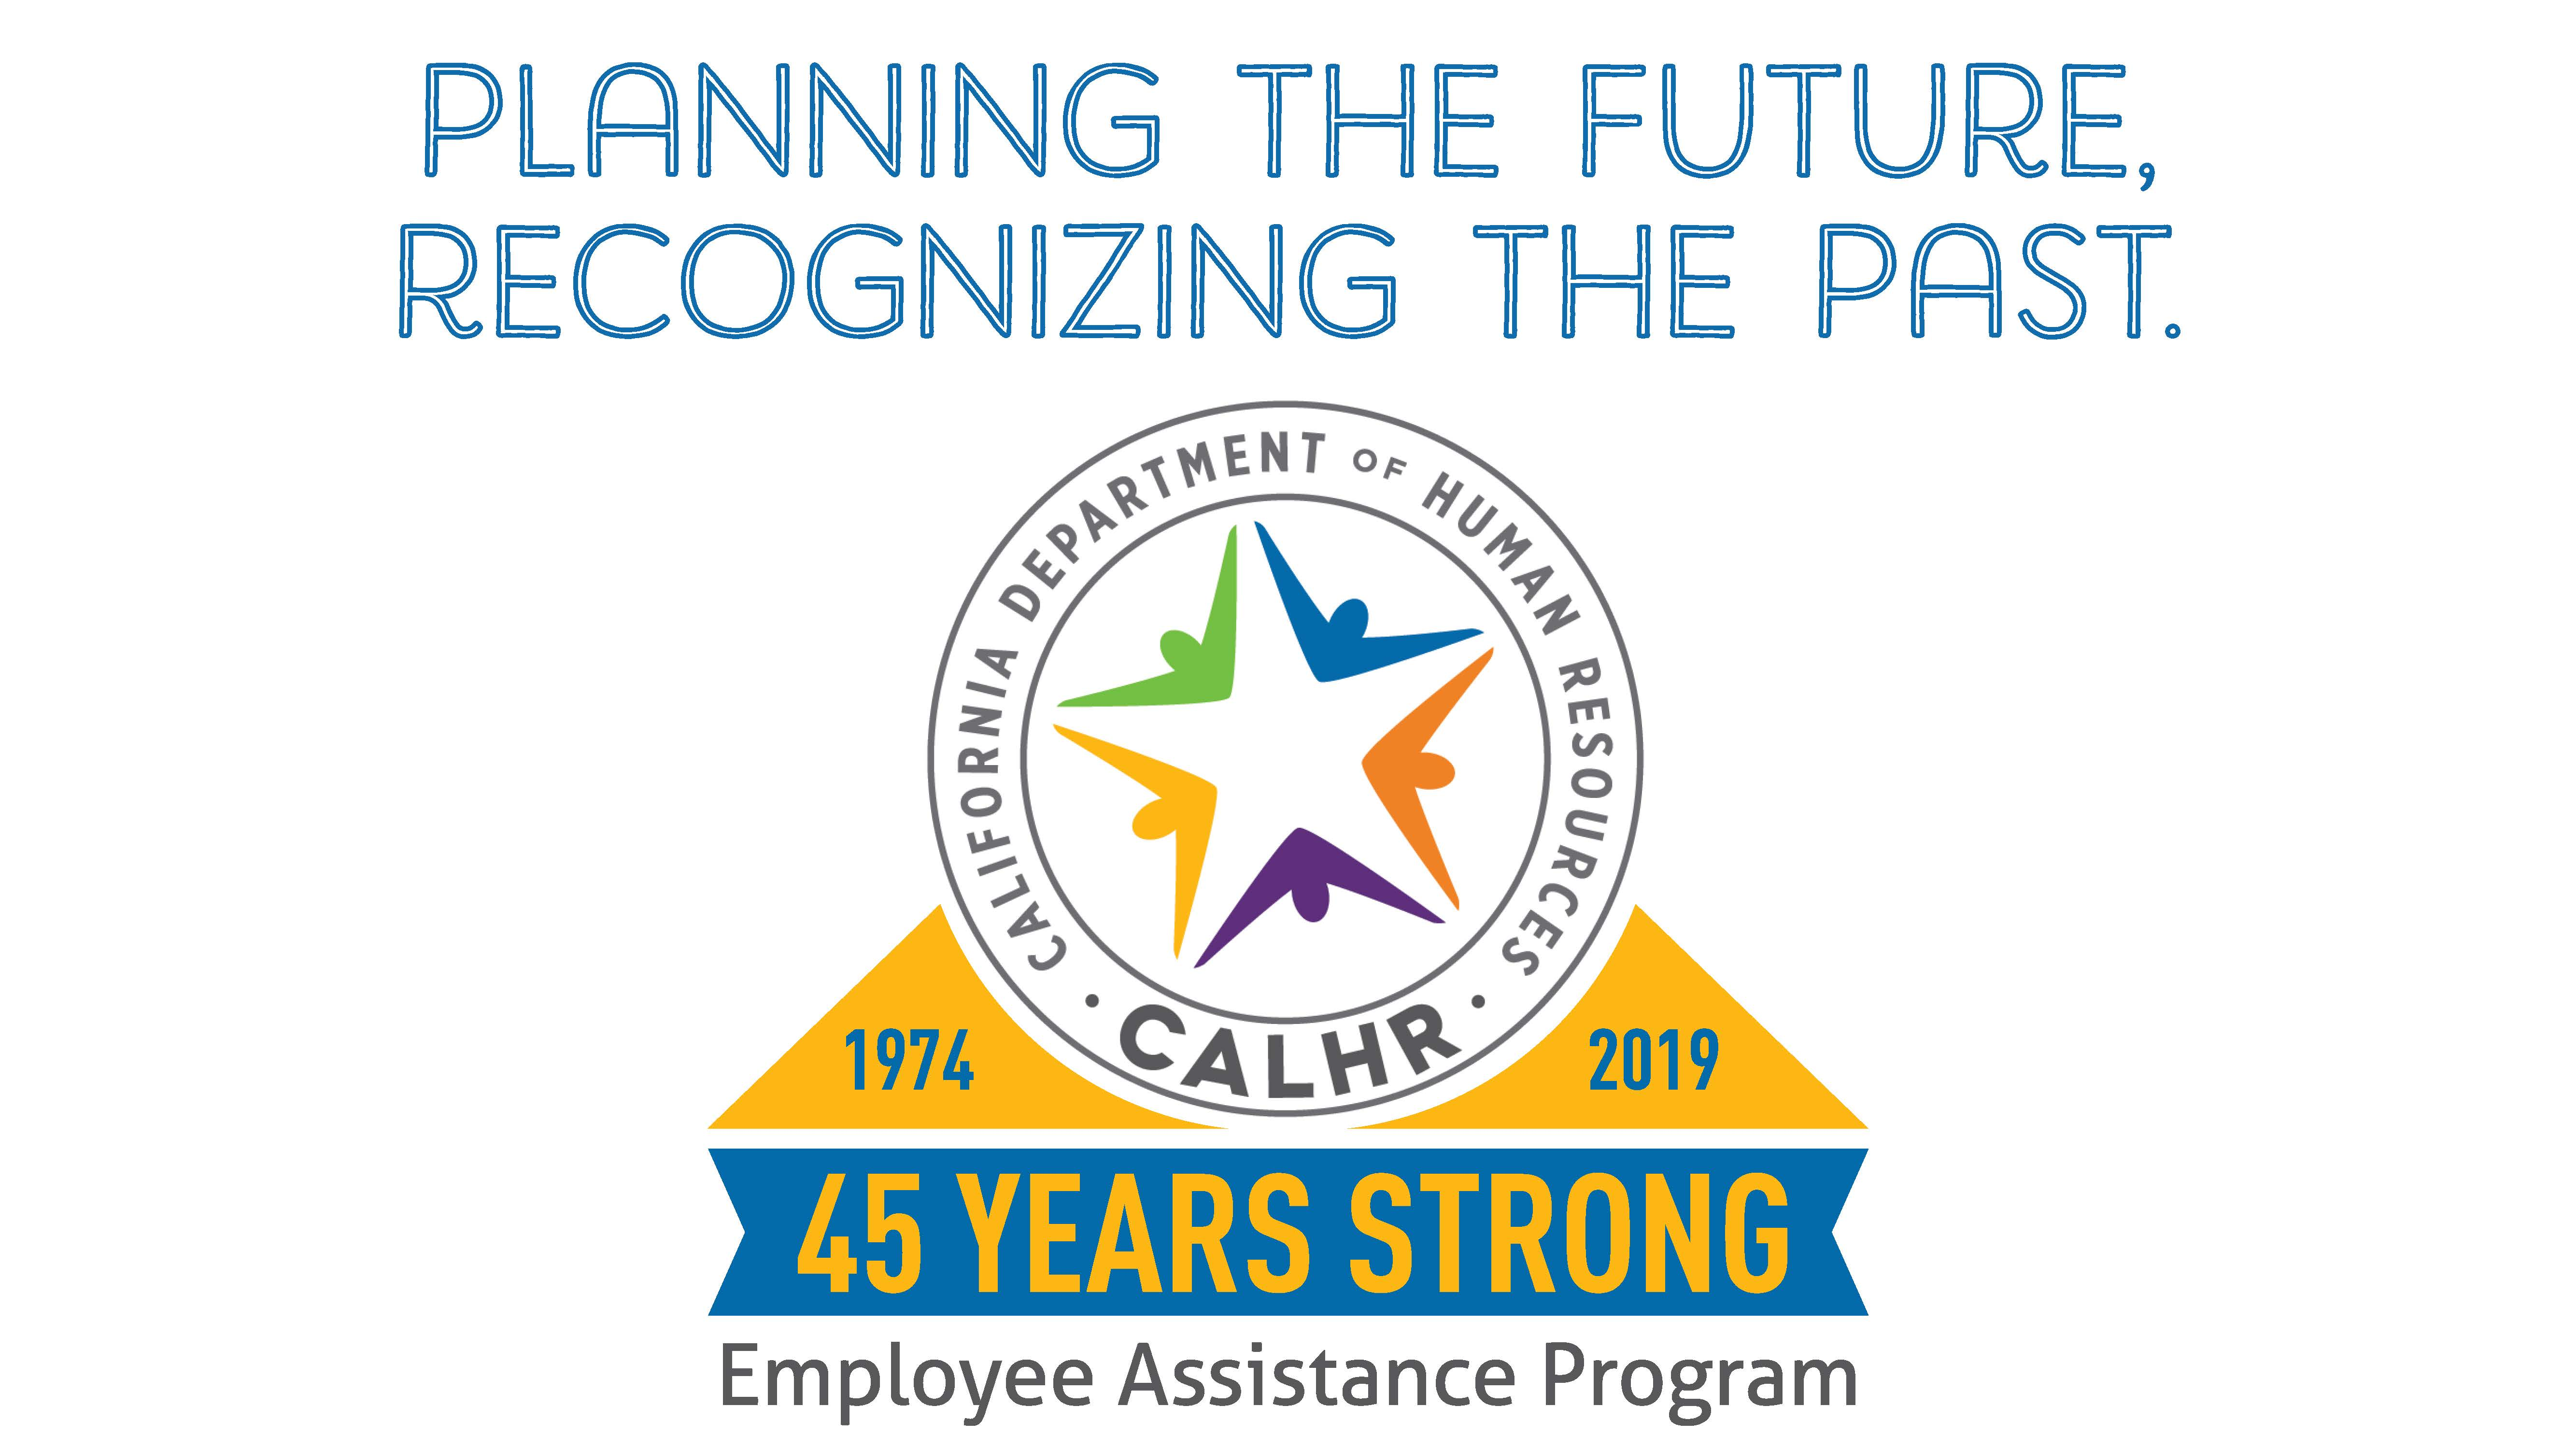 EAP 45 years strong logo. Planning the future, recognizing the past.